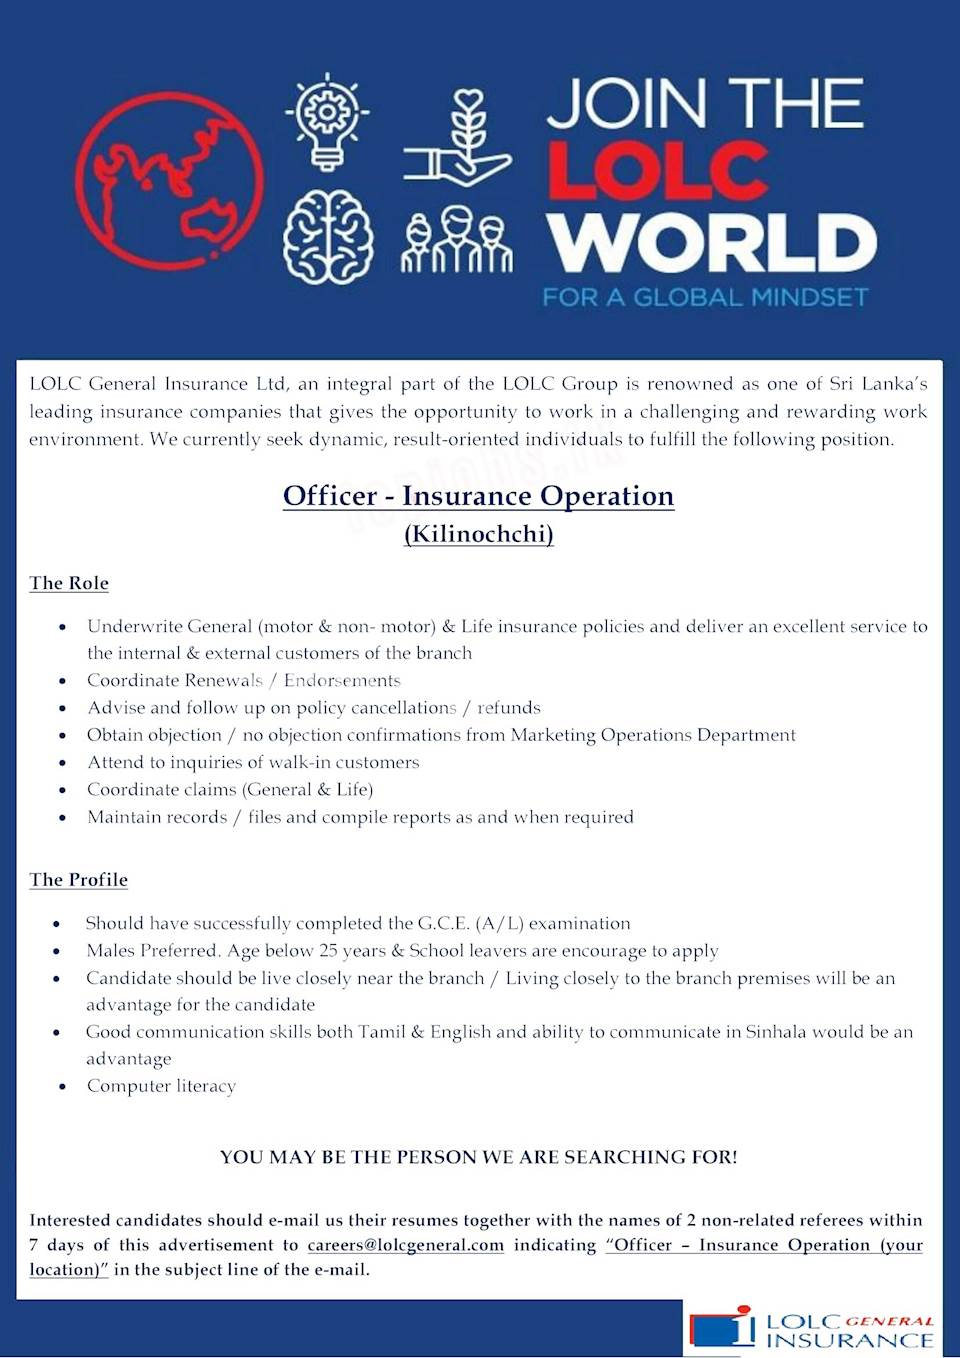 Officer - Insurance Operation (Kilinochchi)